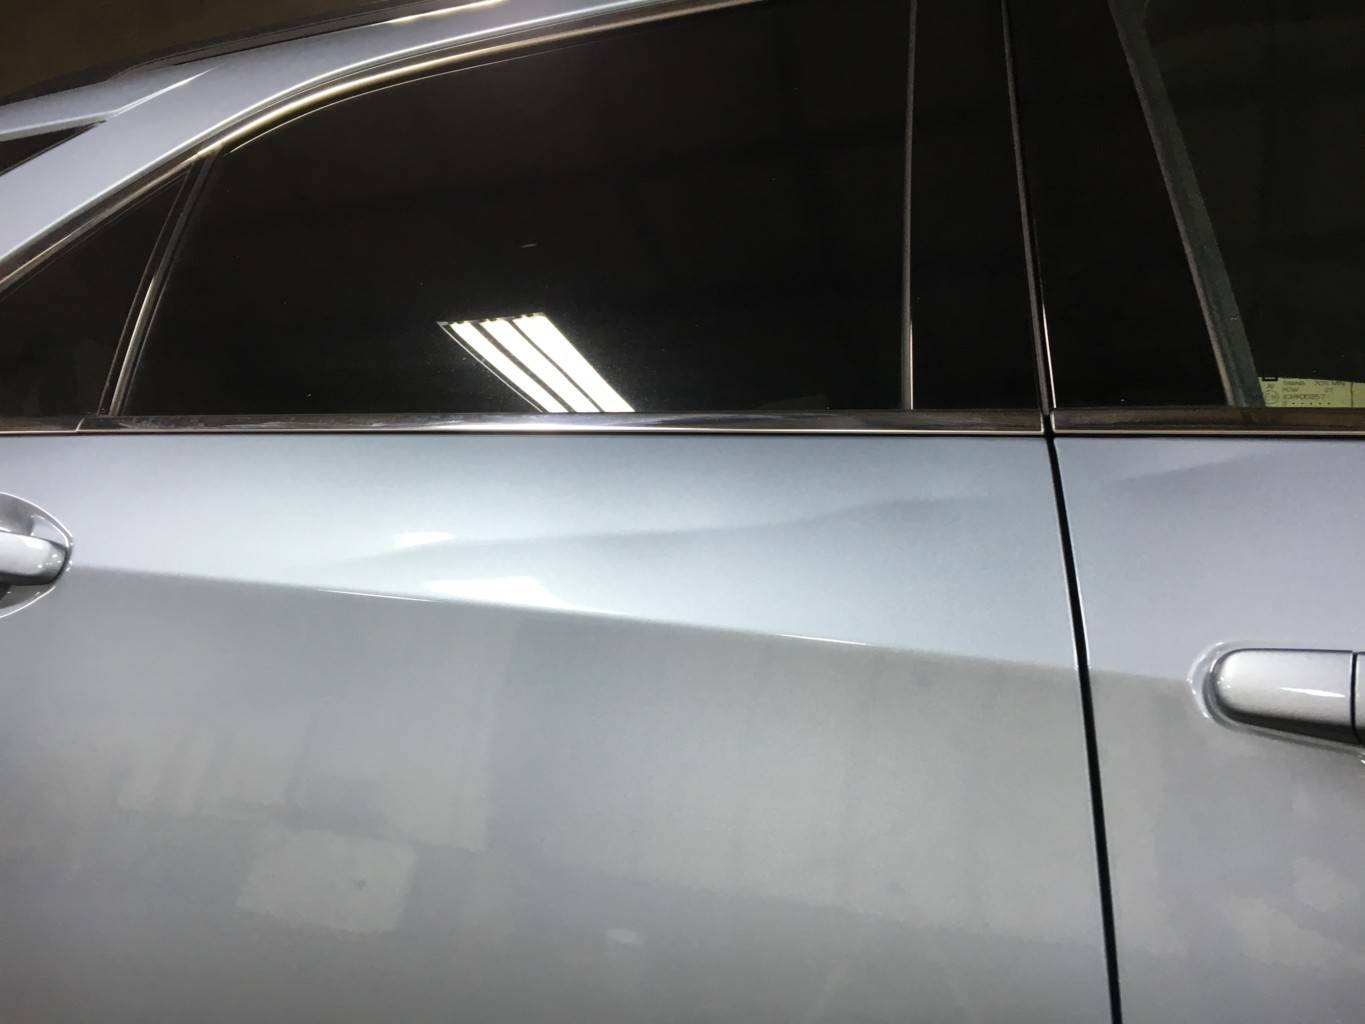 Paintless Dent Repair Grand Rapids, Michigan: Equinox door - before